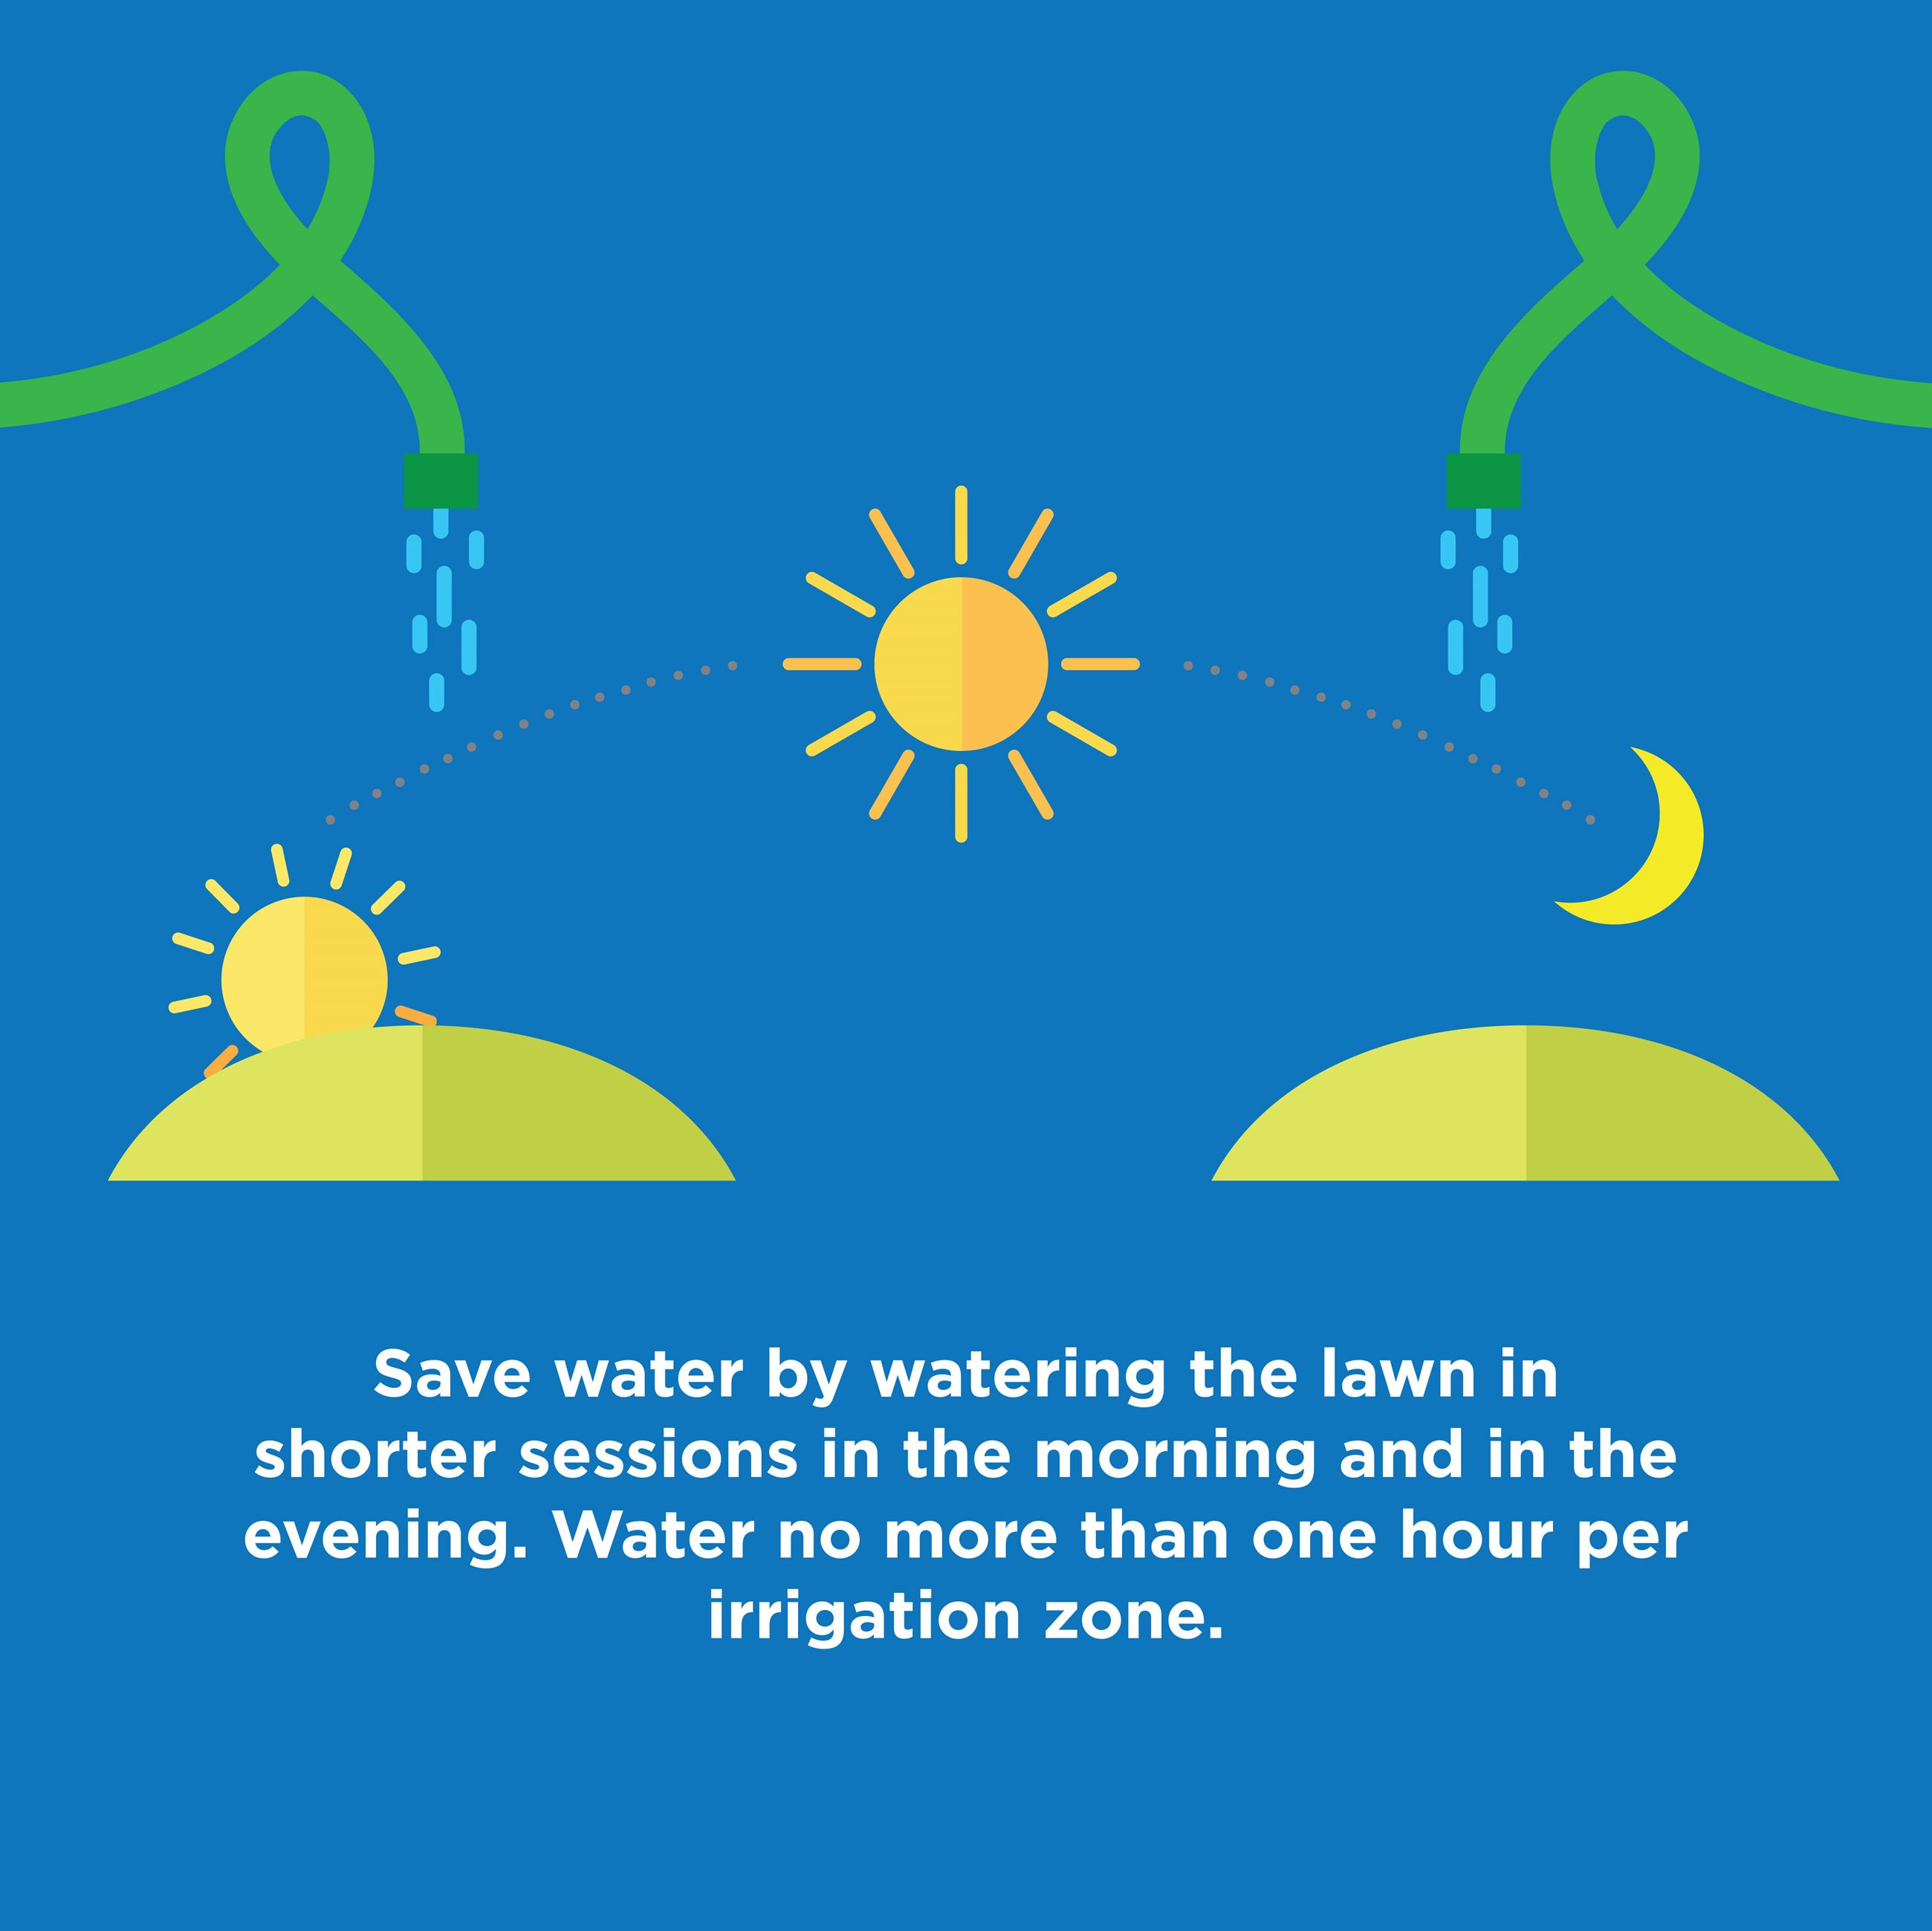 Save water by watering the lawn in shorter sessions.